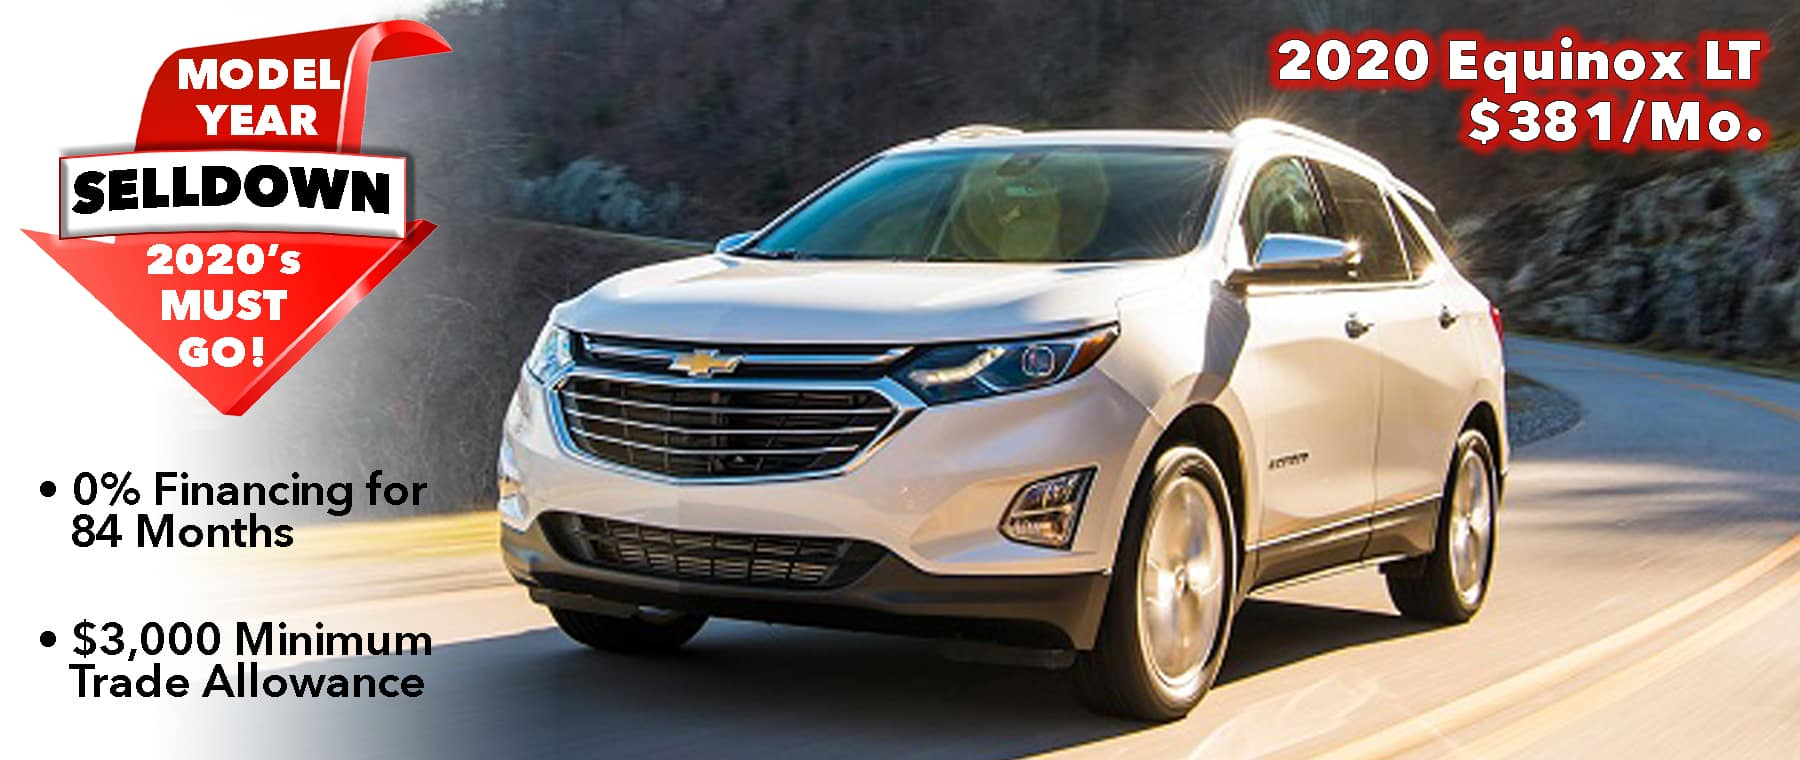 0% @ 84mo. Available On 2020 Models. Buy 2020 Equinox for $381/mo*